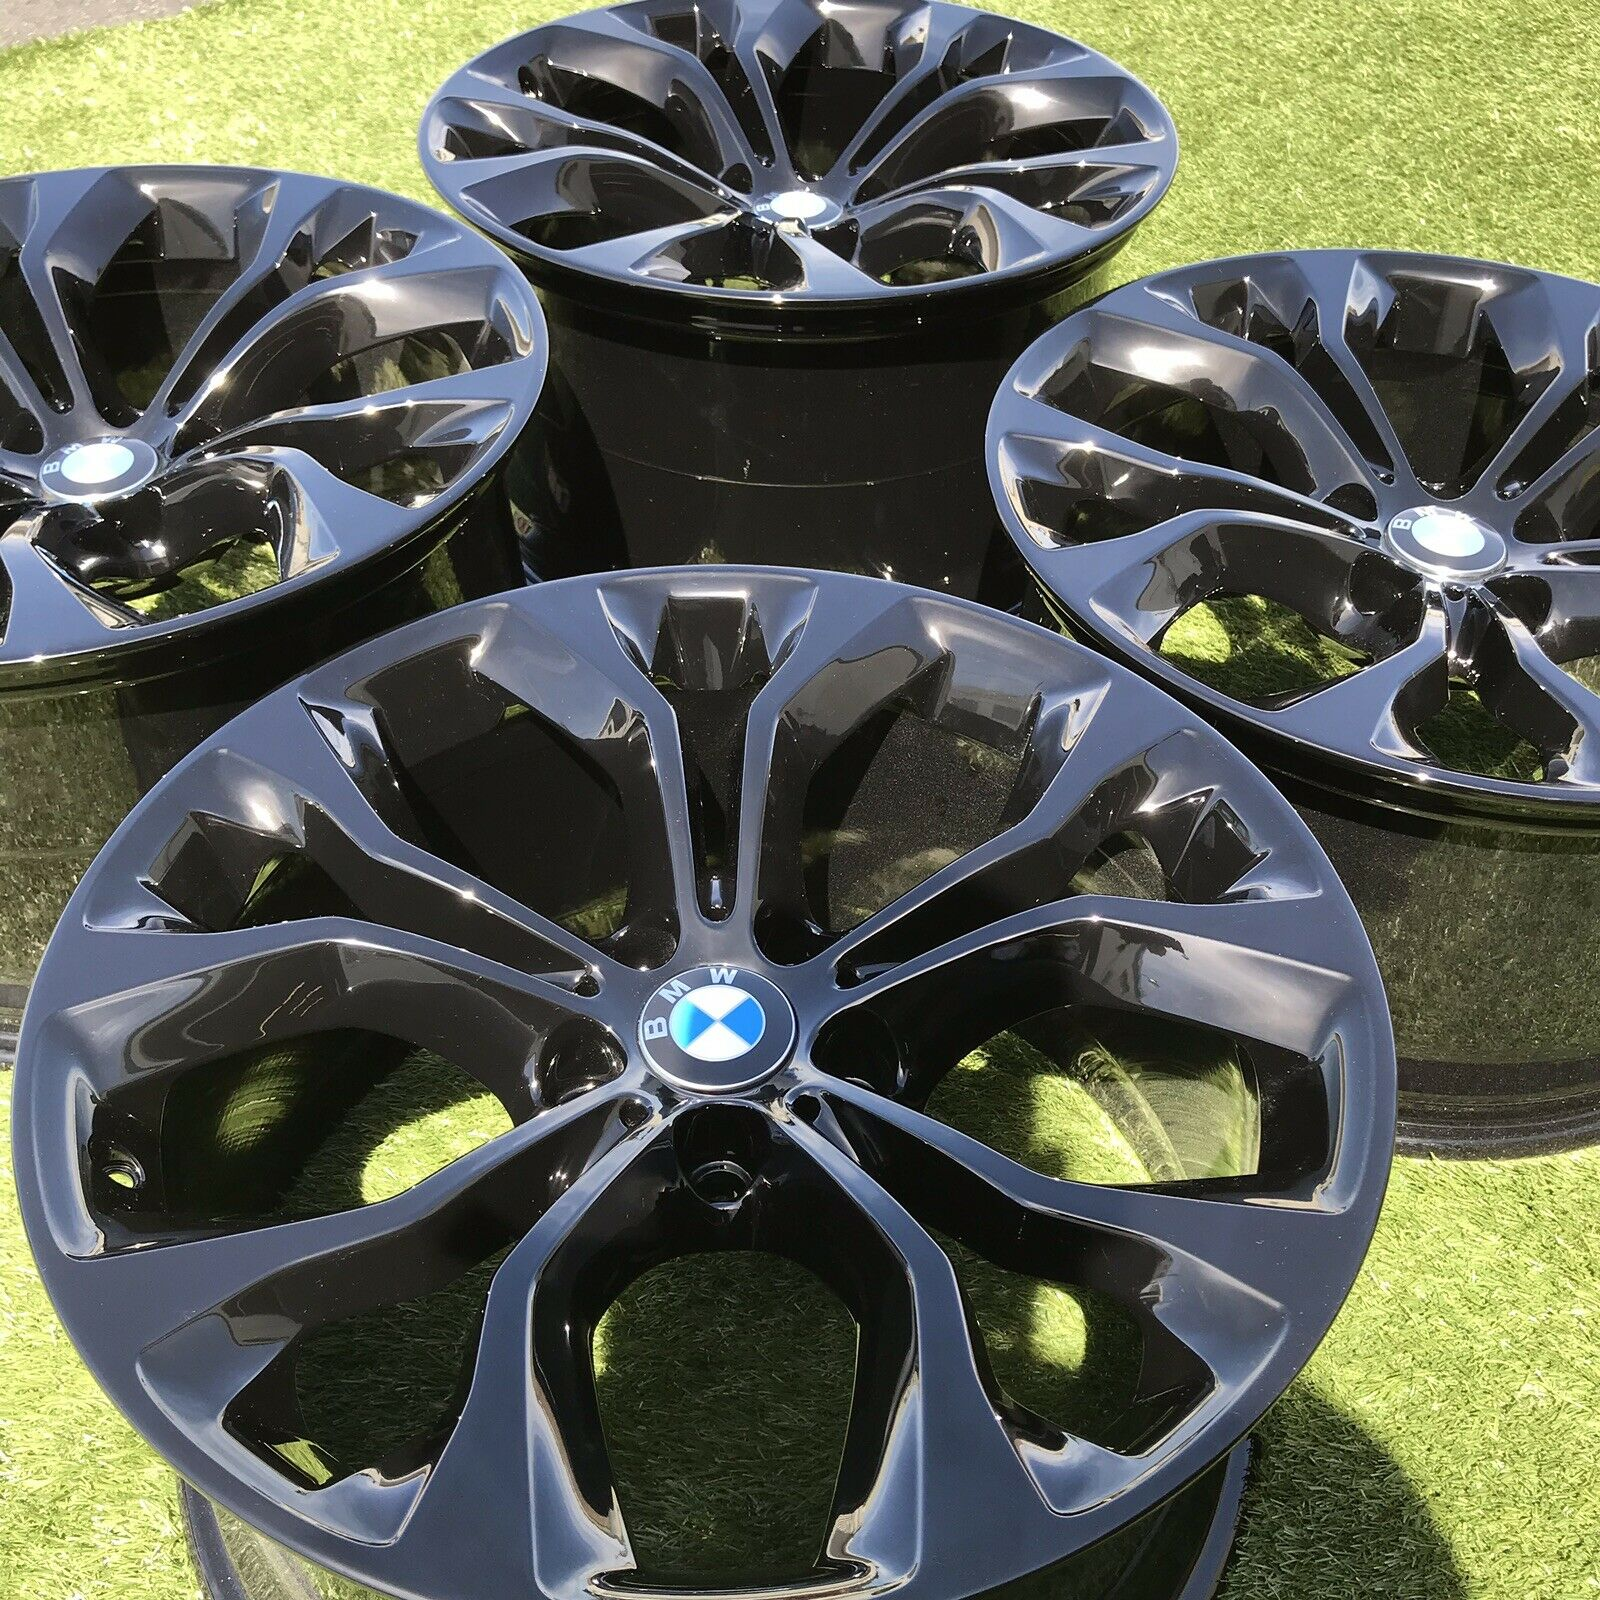 20 Bmw X5 Rims Wheels Factory Set Black Inch X6 M X5m Genuine Luxury Wheel Collection